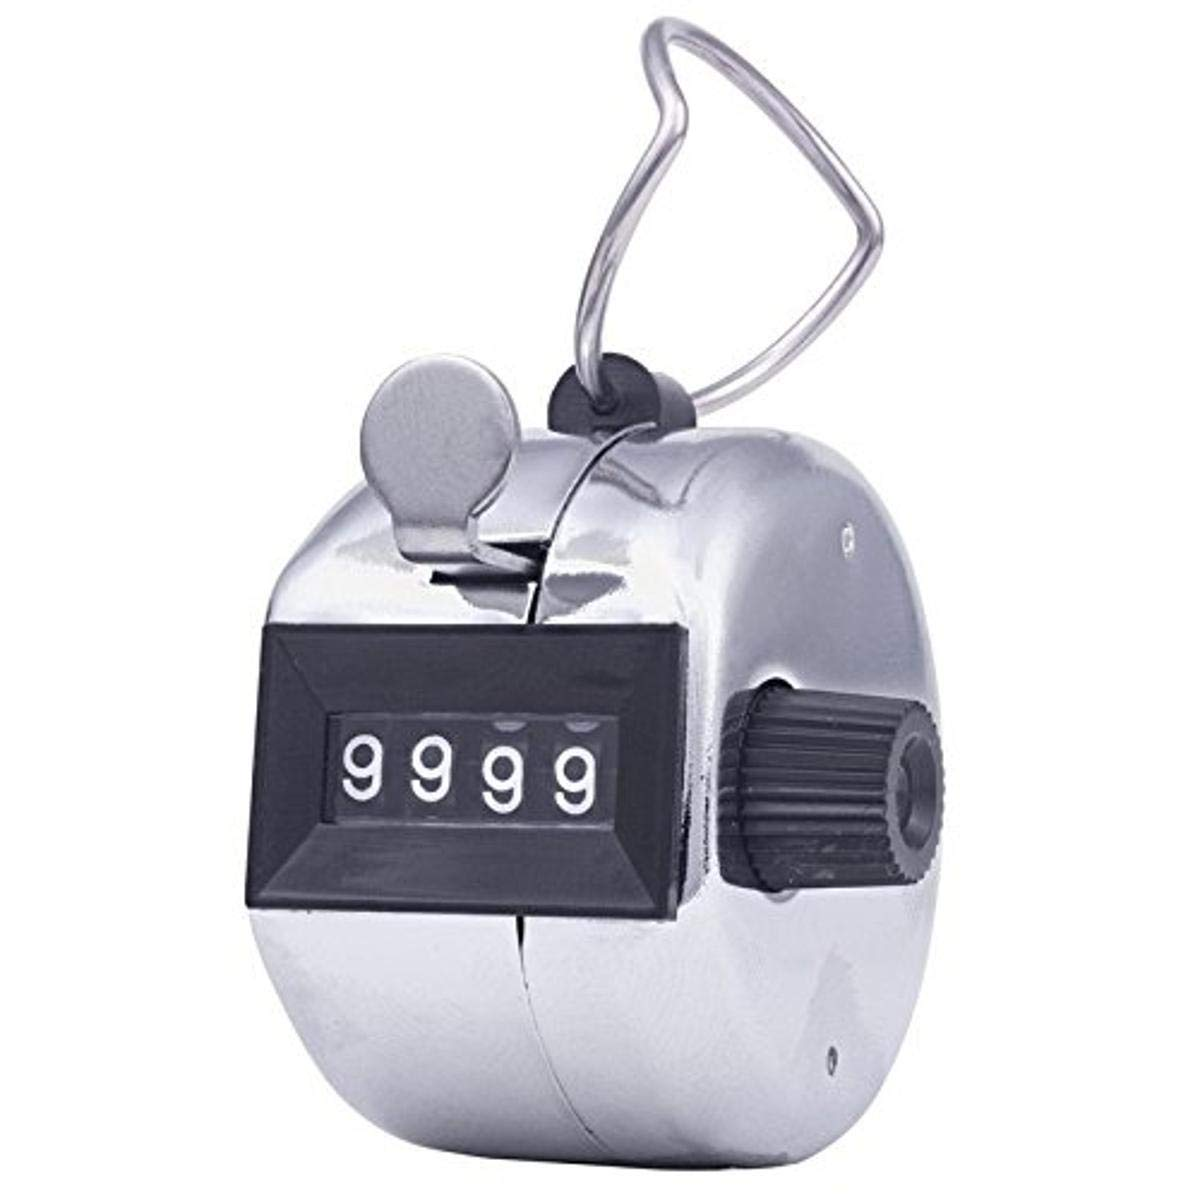 CONTROL 3125 Mechanical Tally Counter 4 New popularity of 100% quality warranty Number Digits: Hand